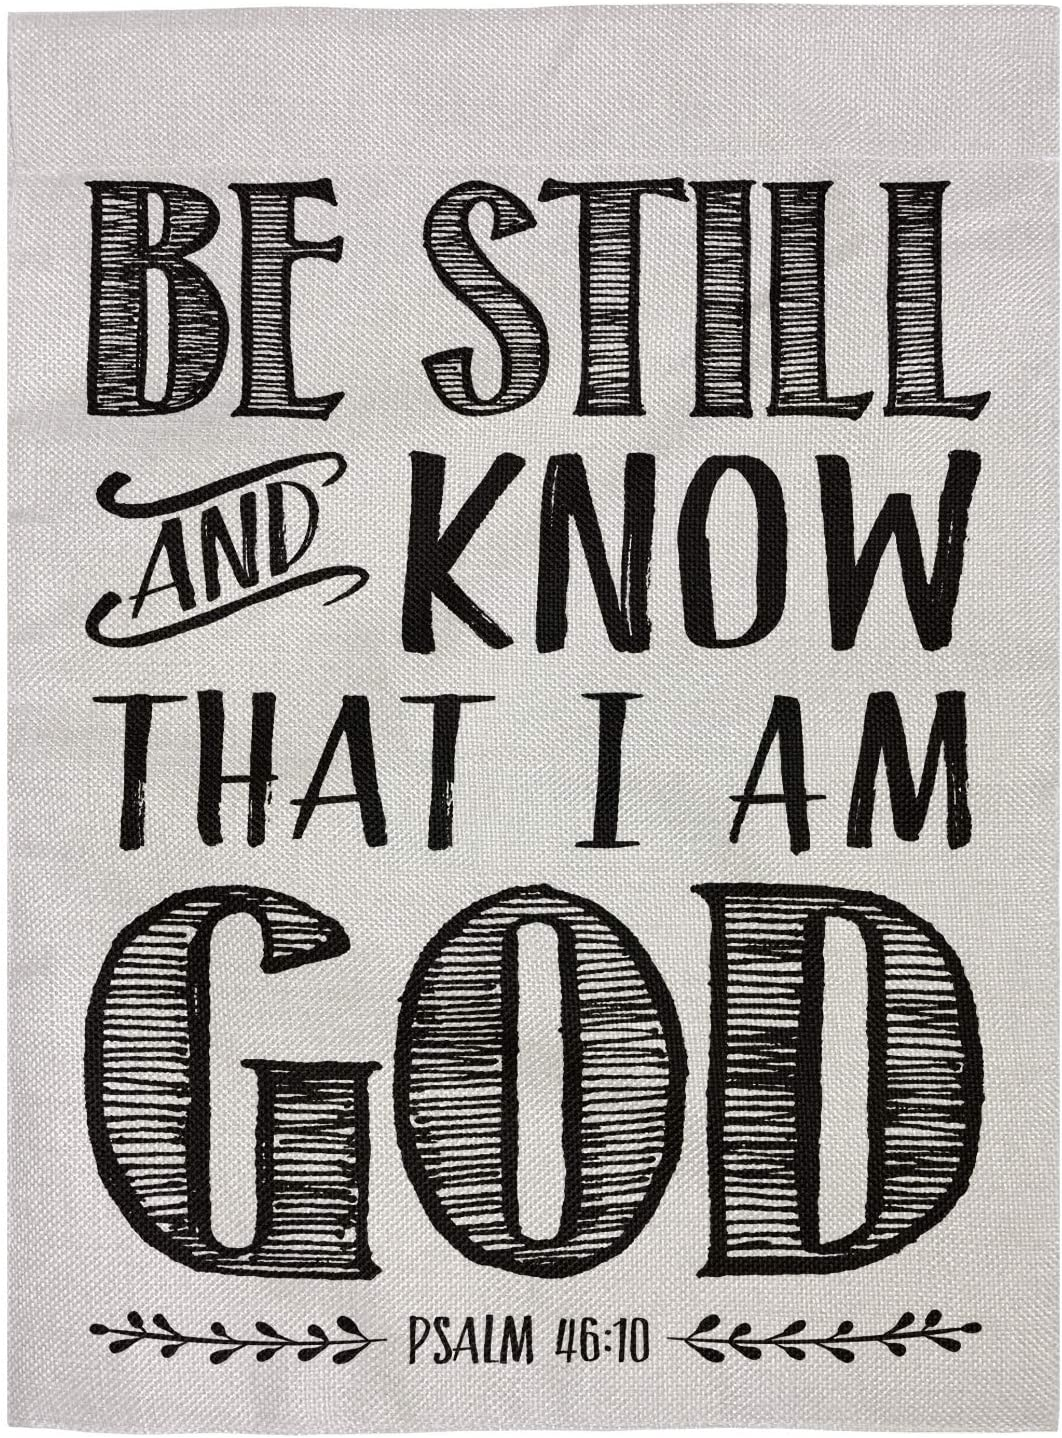 """pingpi Christian Biblical Design Double Sided Burlap Garden Flag 12.5""""x18"""", Be Still and Know That I am God - Psalm 46:10"""